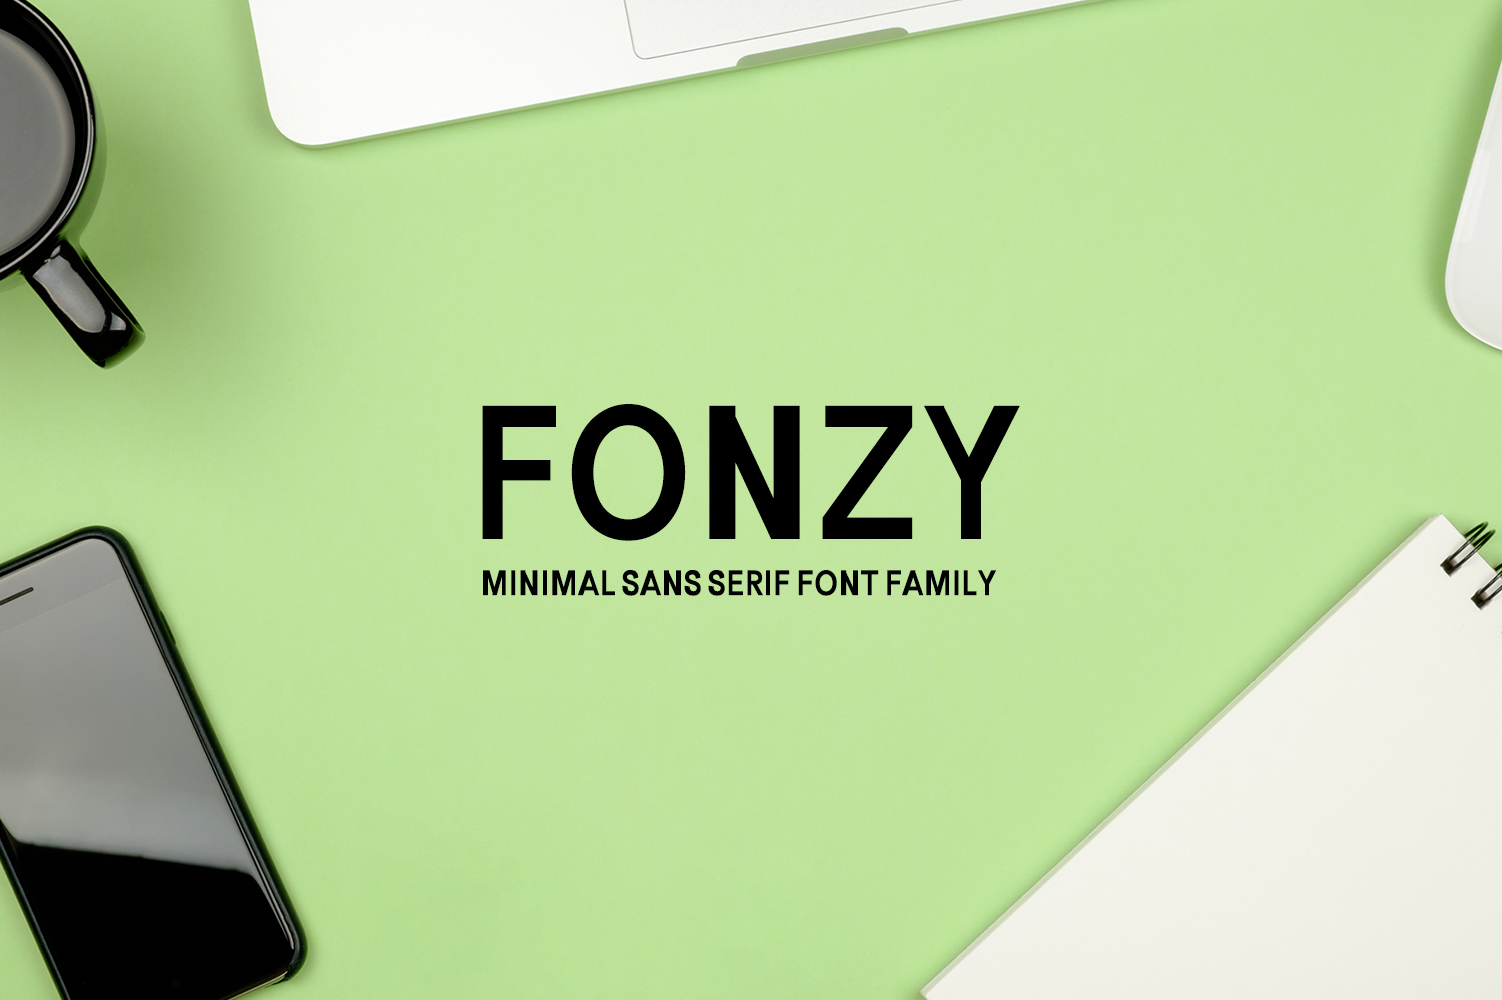 Fonzy Minimal Sans Serif 5 Font Pack example image 1